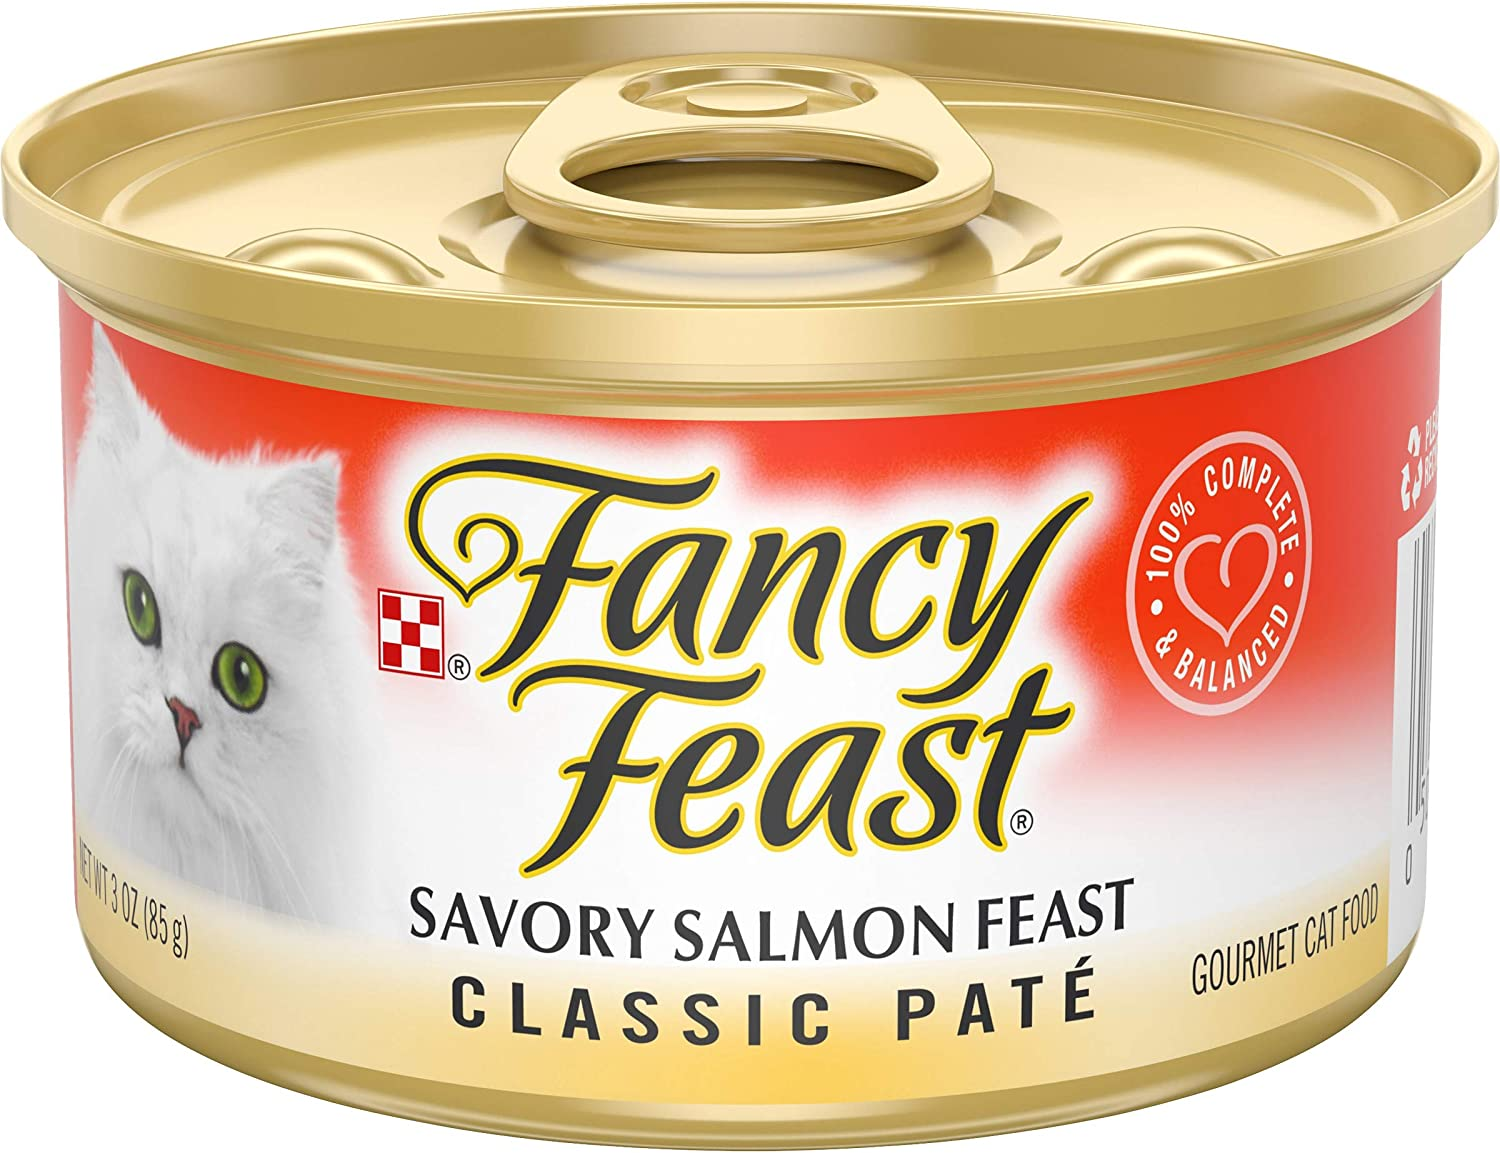 Purina Fancy Feast Grain Free Pate Wet Cat Food, Classic Pate Savory Salmon Feast - (24) 3 oz. Cans